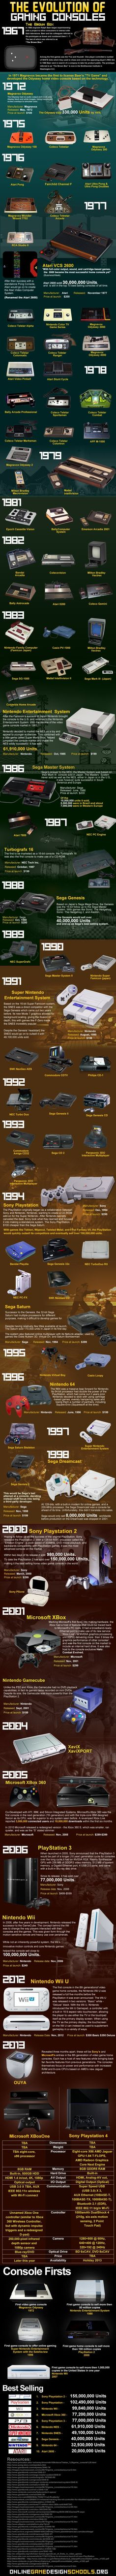 The Evolution of Gaming Consoles